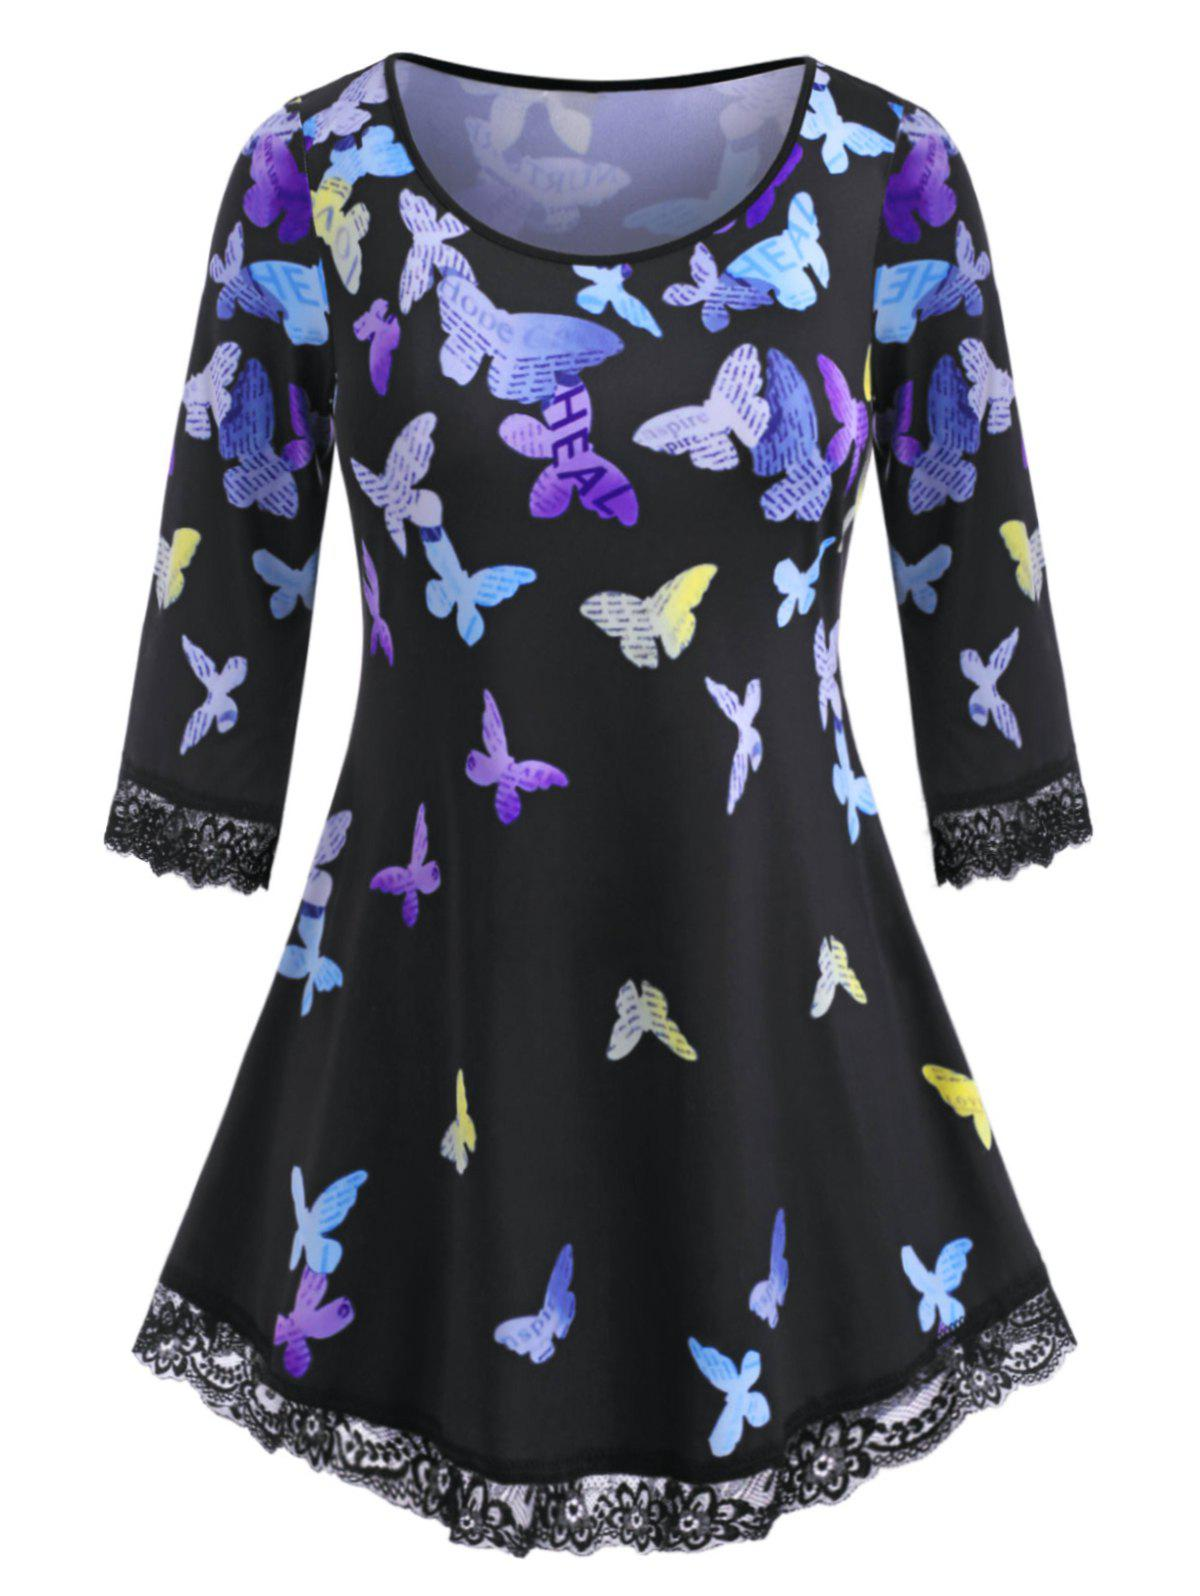 Multicolored Butterfly Scalloped Lace Trim Plus Size Top - BLACK 1X